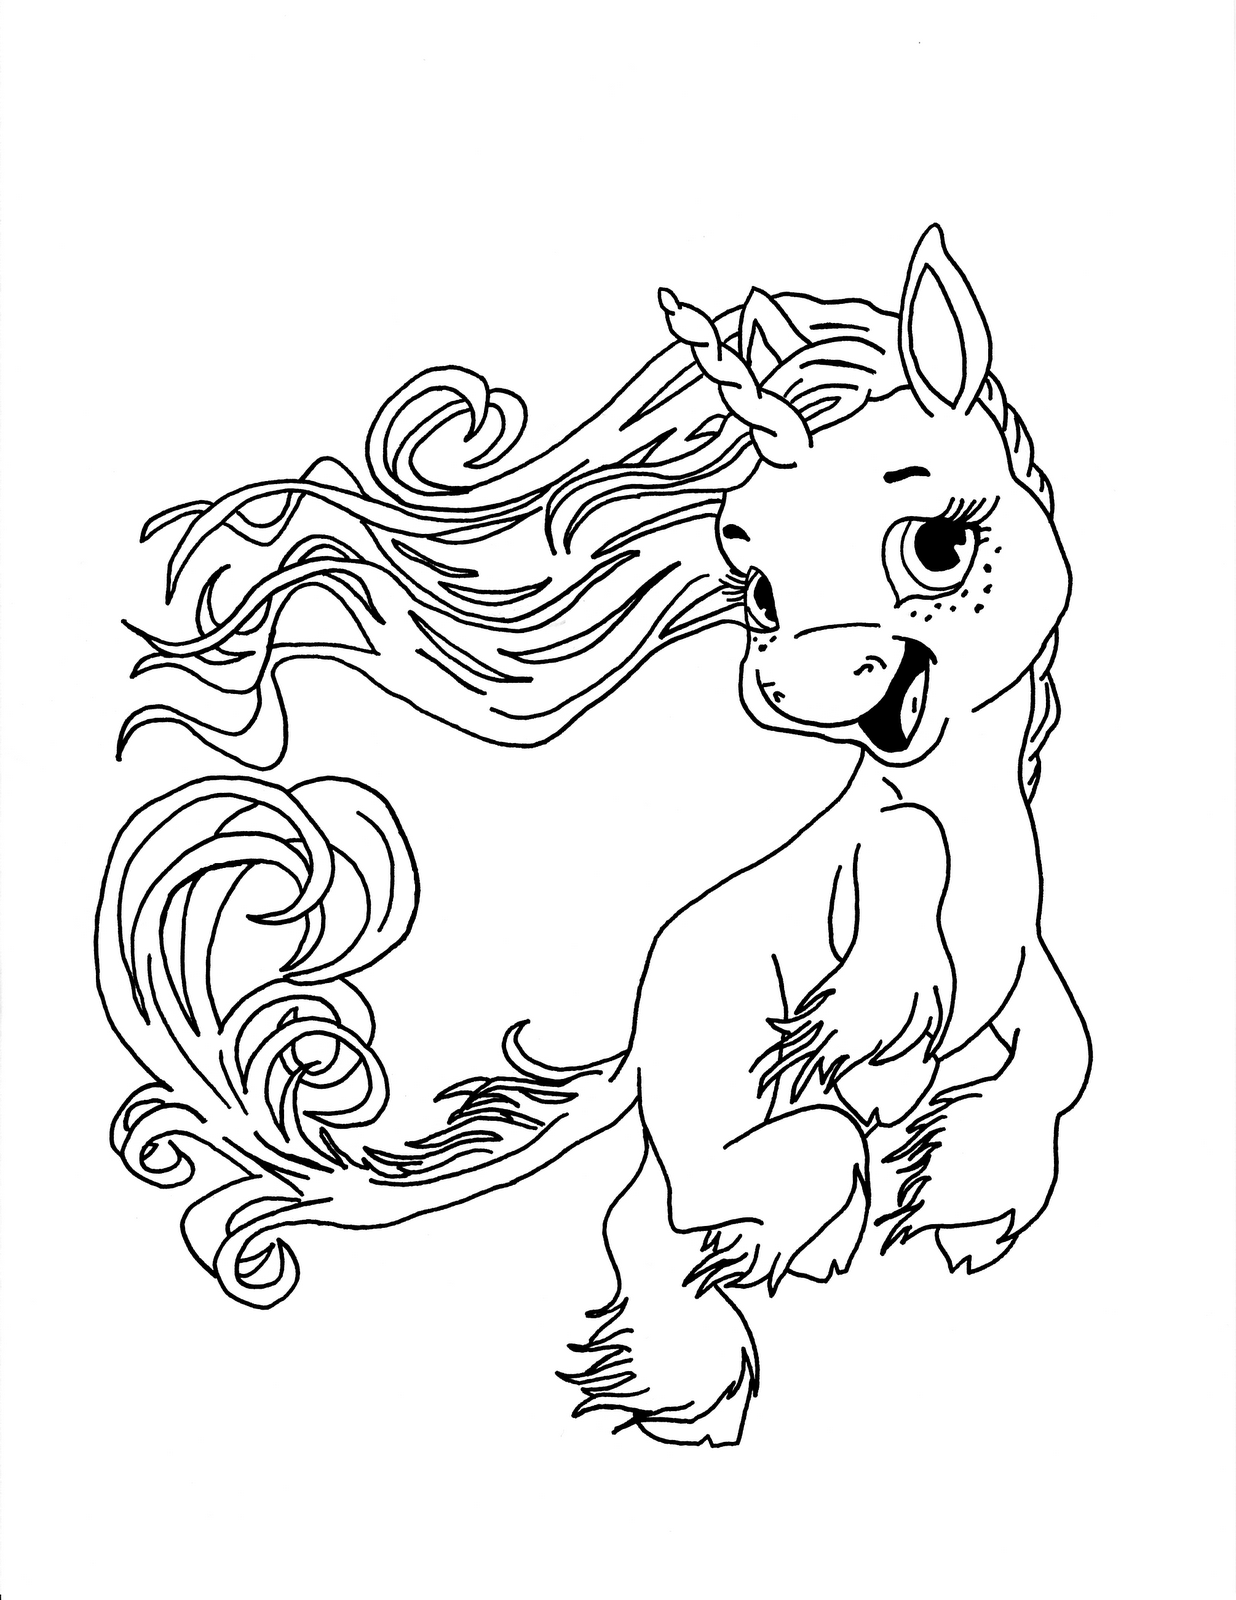 Unicorn Coloring Pages For Adults Classy 11 Free Printable Adult ...